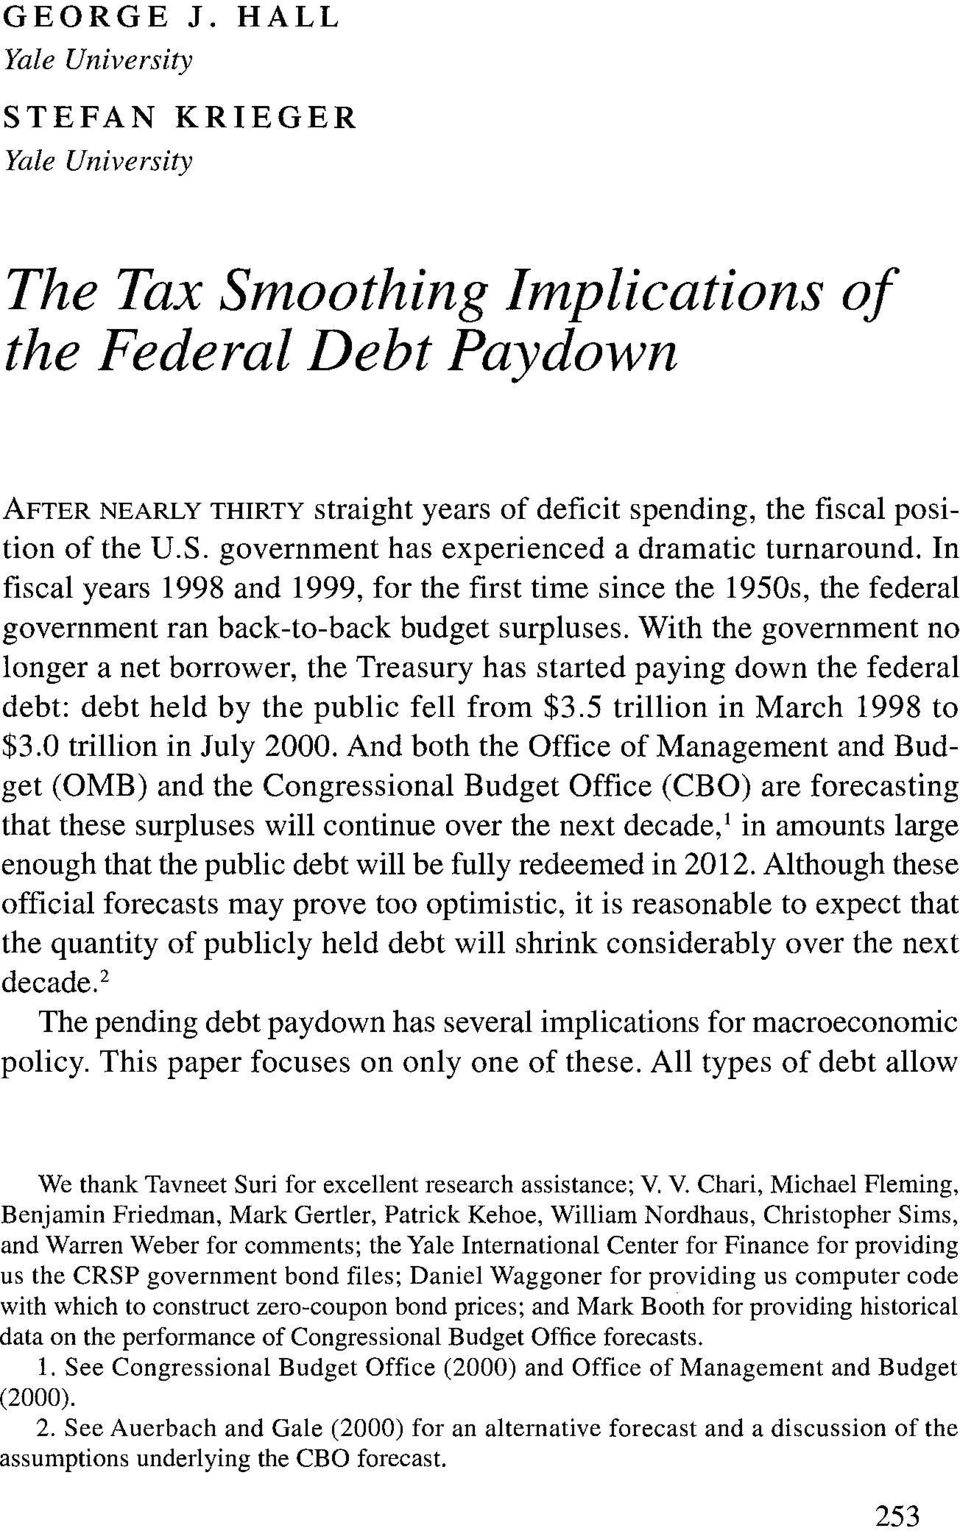 In fiscal years 1998 and 1999, for the first time since the 1950s, the federal government ran back-to-back budget surpluses.